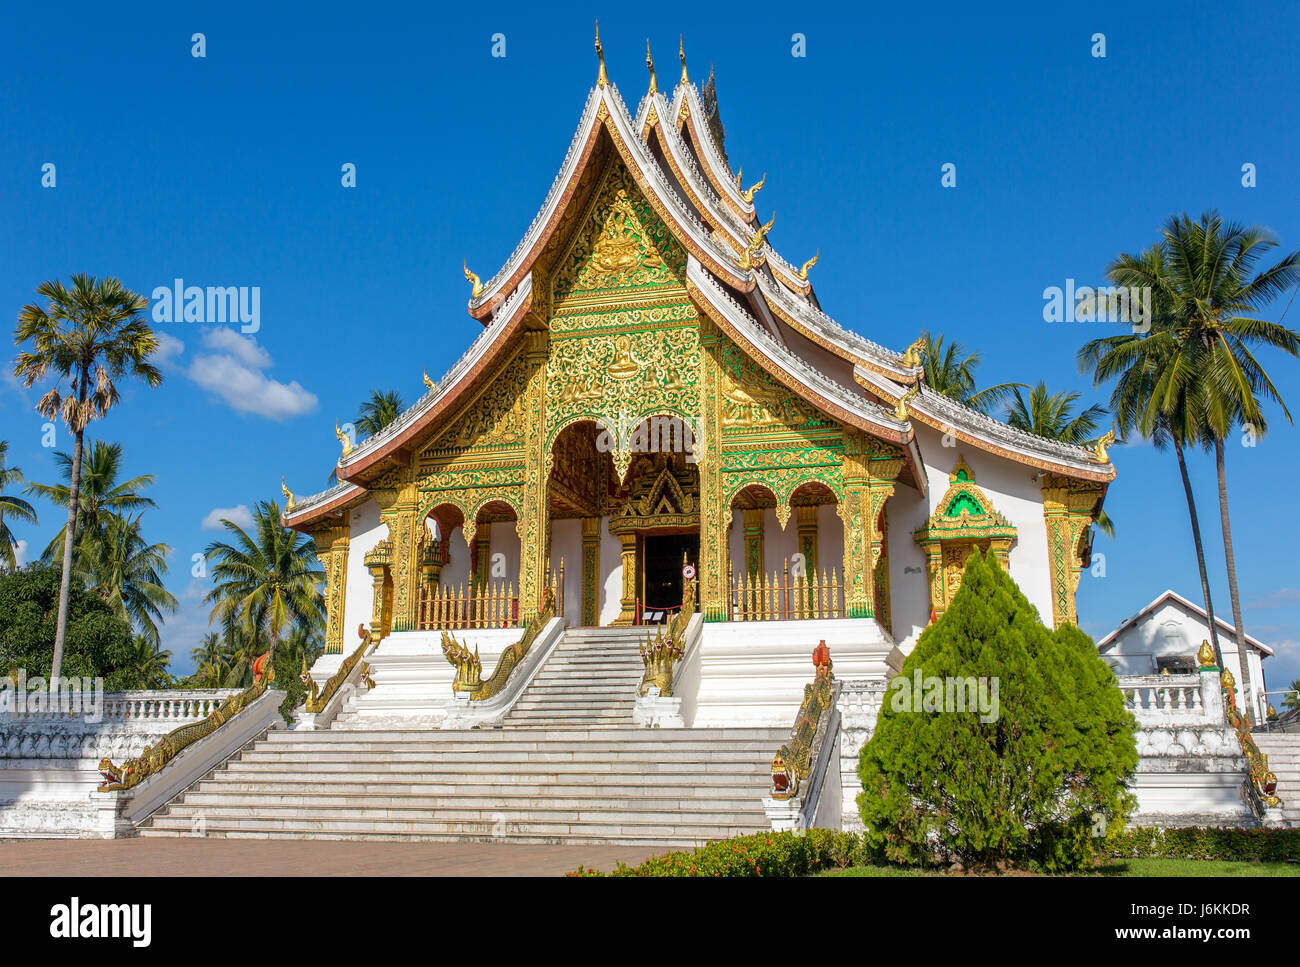 Haw Pha Bang temple in Luang Prabang, Laos - Stock Image